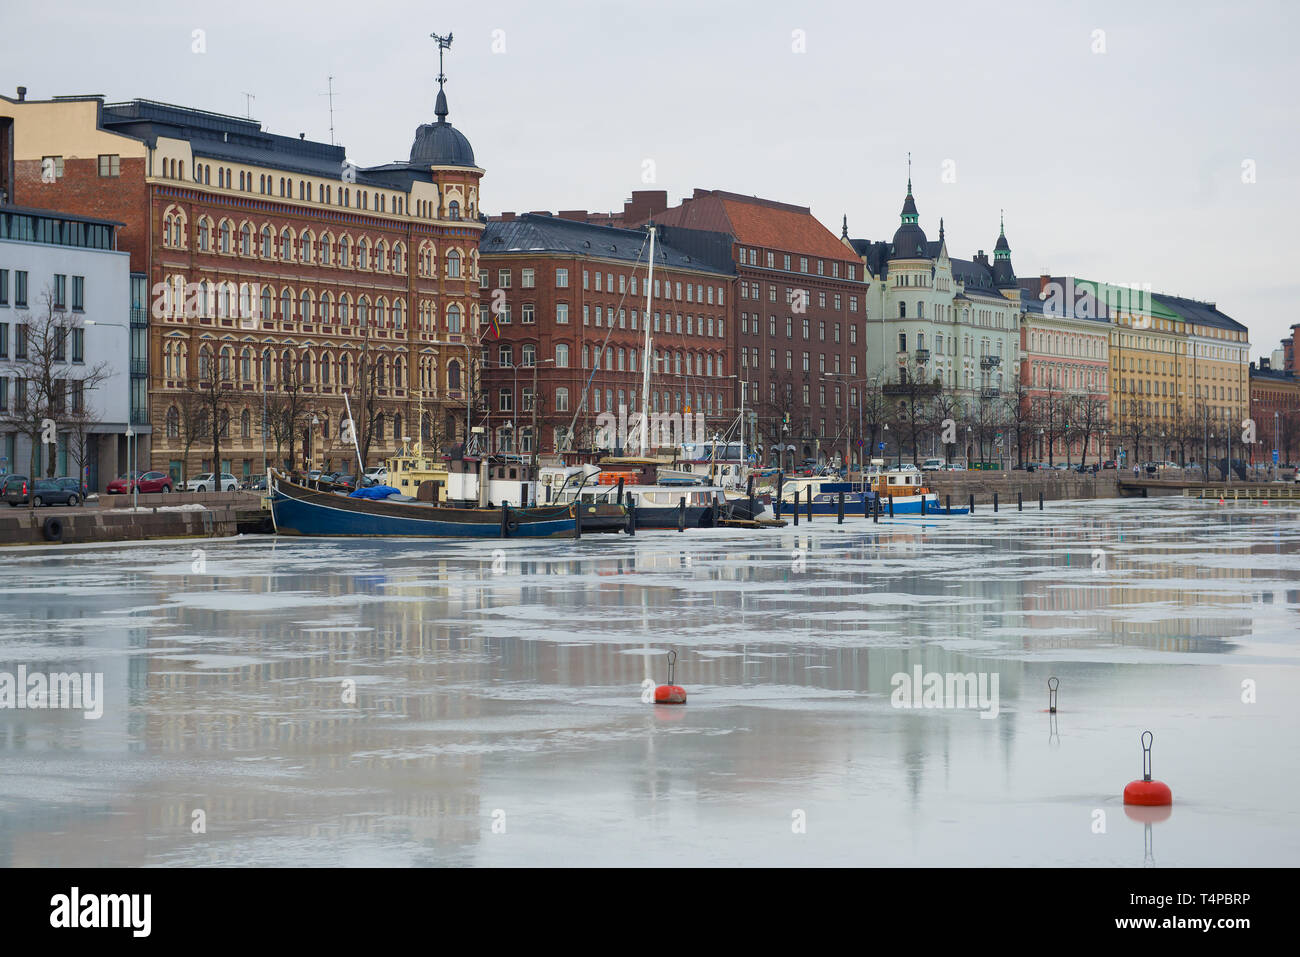 View of the Northern Embankment on a cloudy March day. Helsinki, Finland - Stock Image